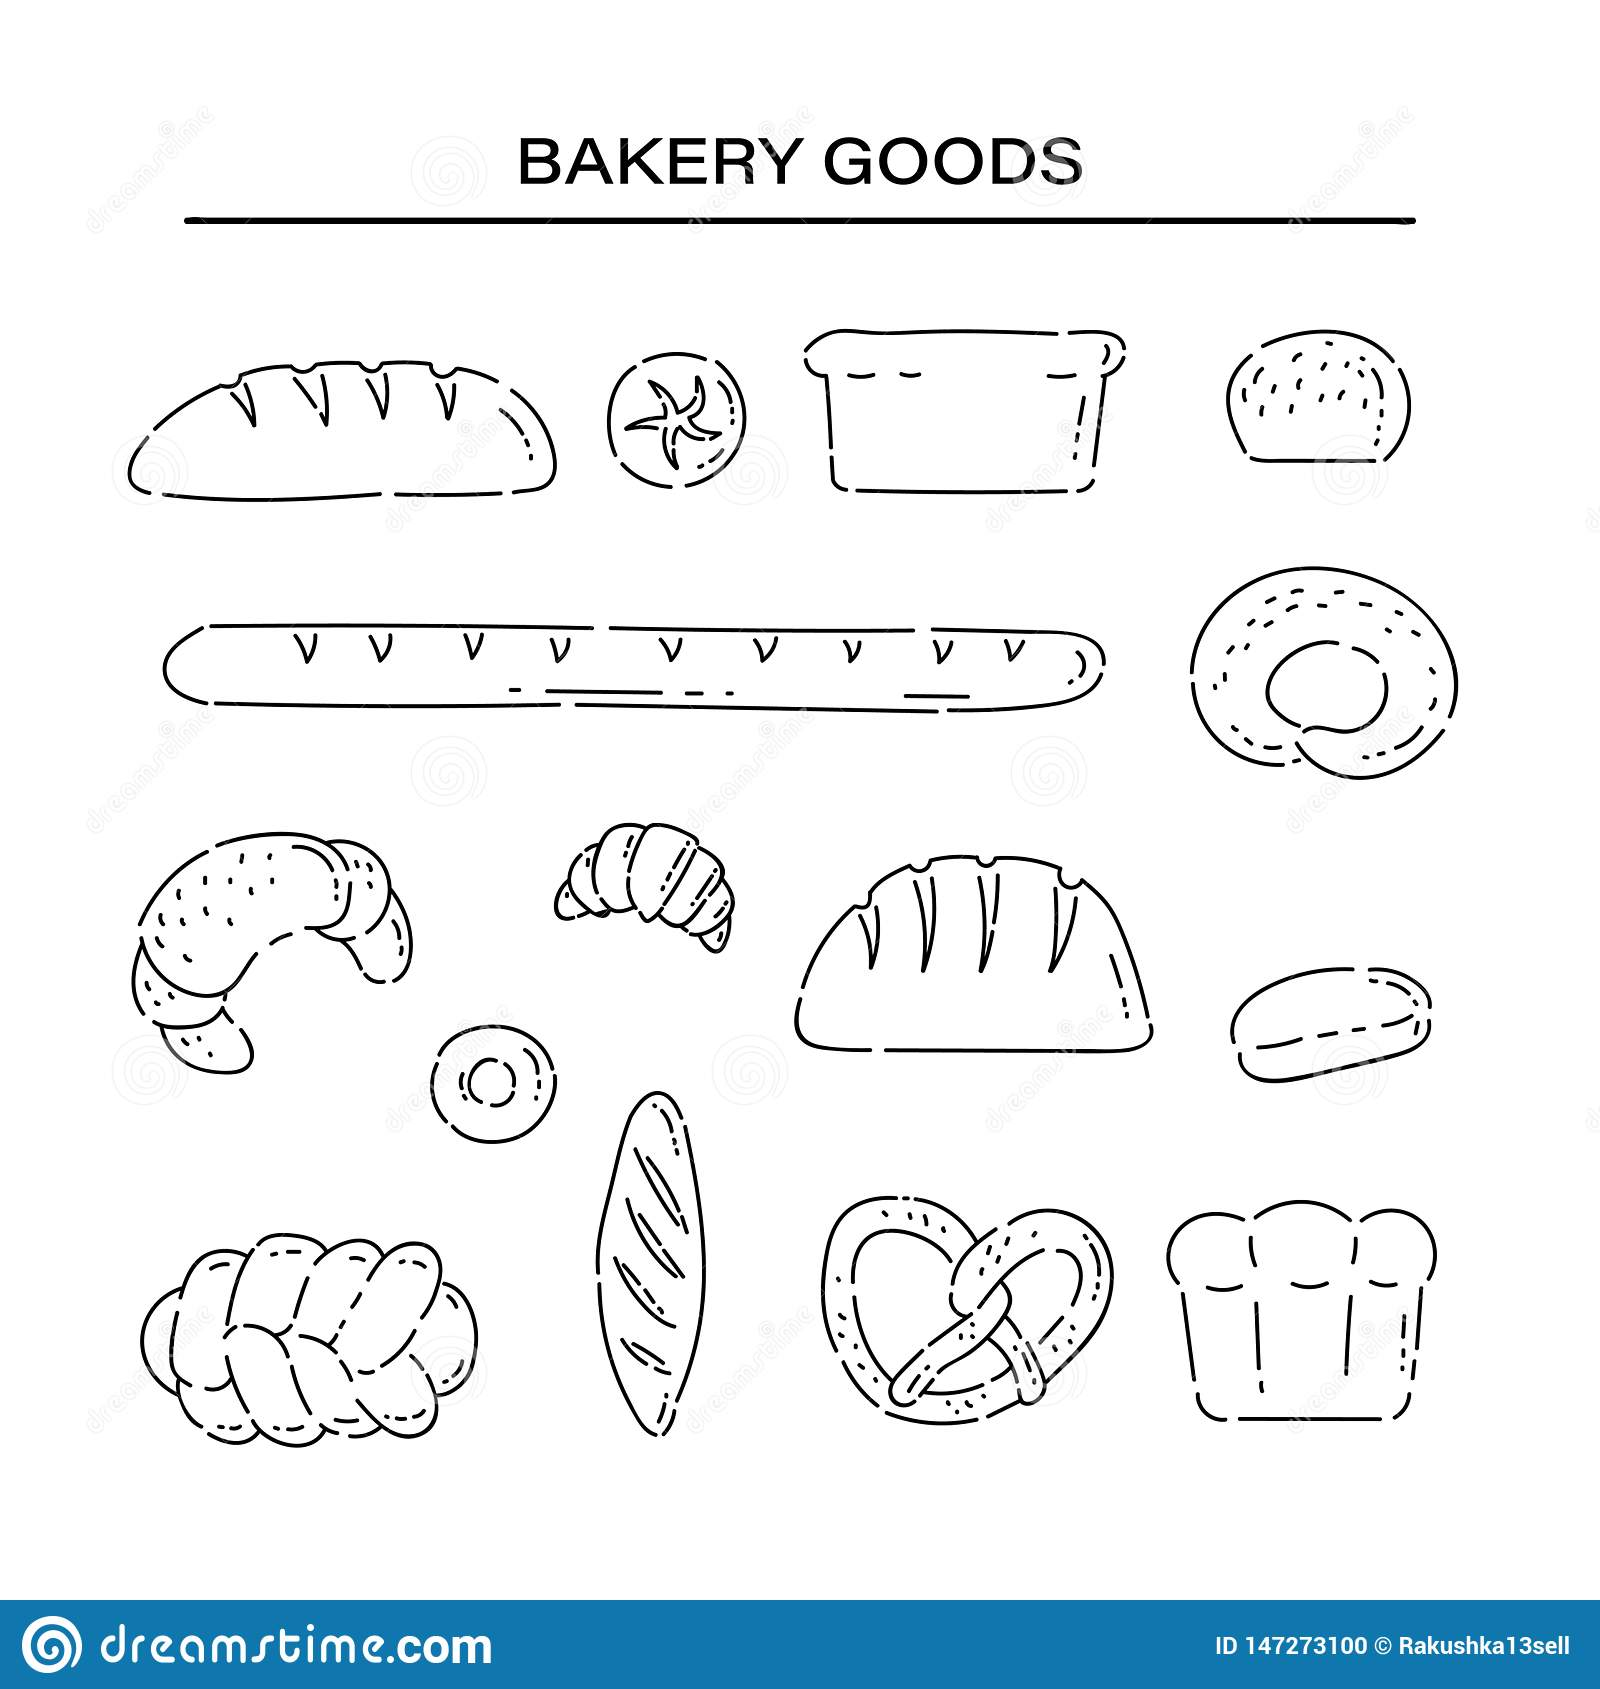 Set bakery products bread line doodle icons. Different baked goods vector sketch black isolated illustration on white